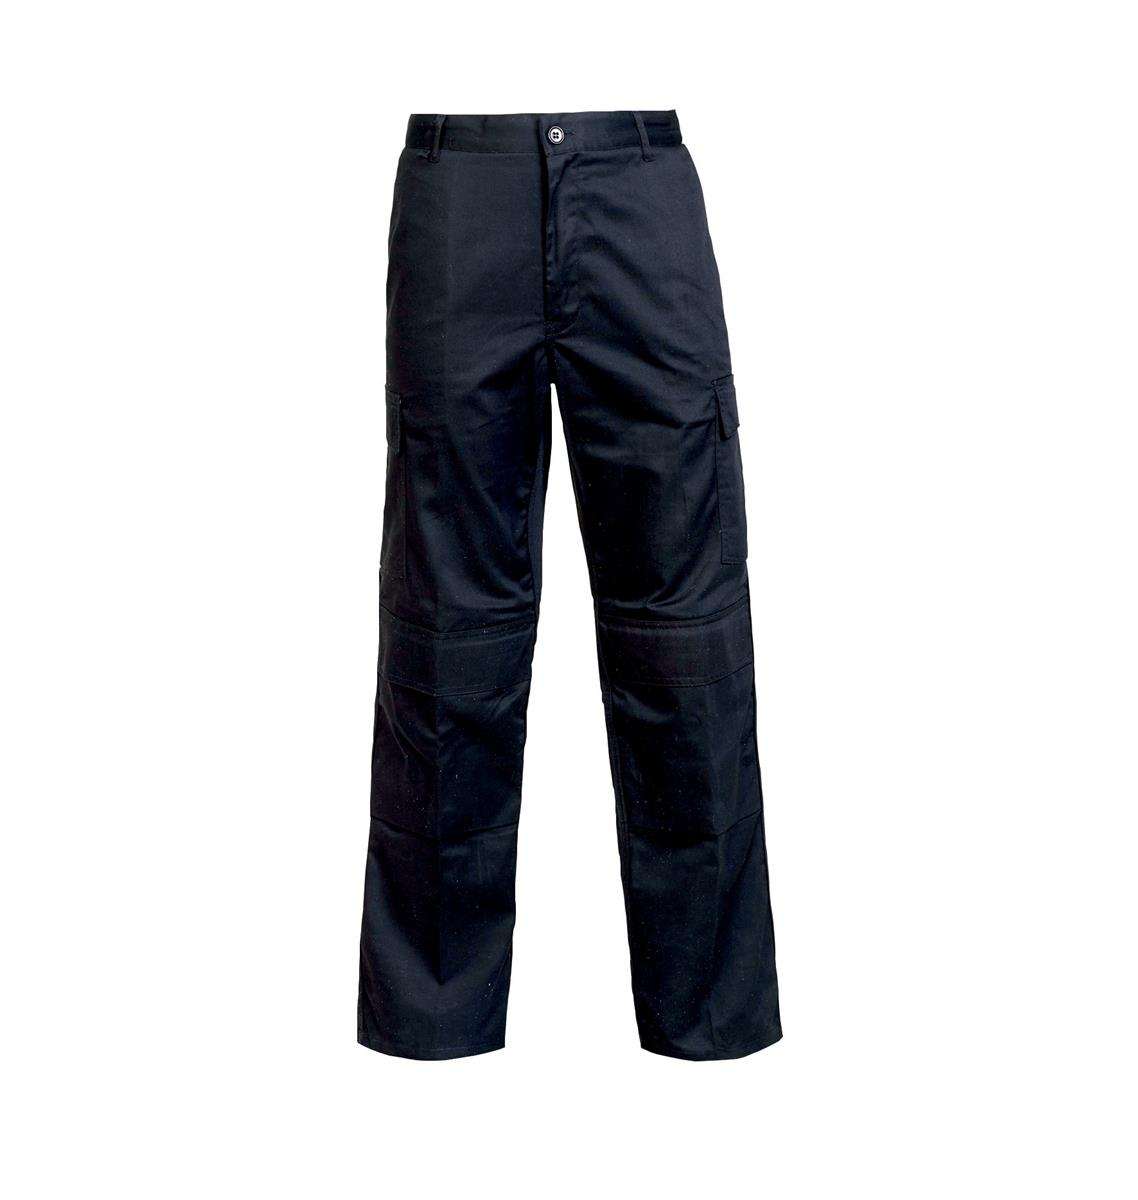 Combat Trousers Polycotton with Pockets 40in Regular Black Ref PCTHWBL40 *1-3 Days Lead Time*